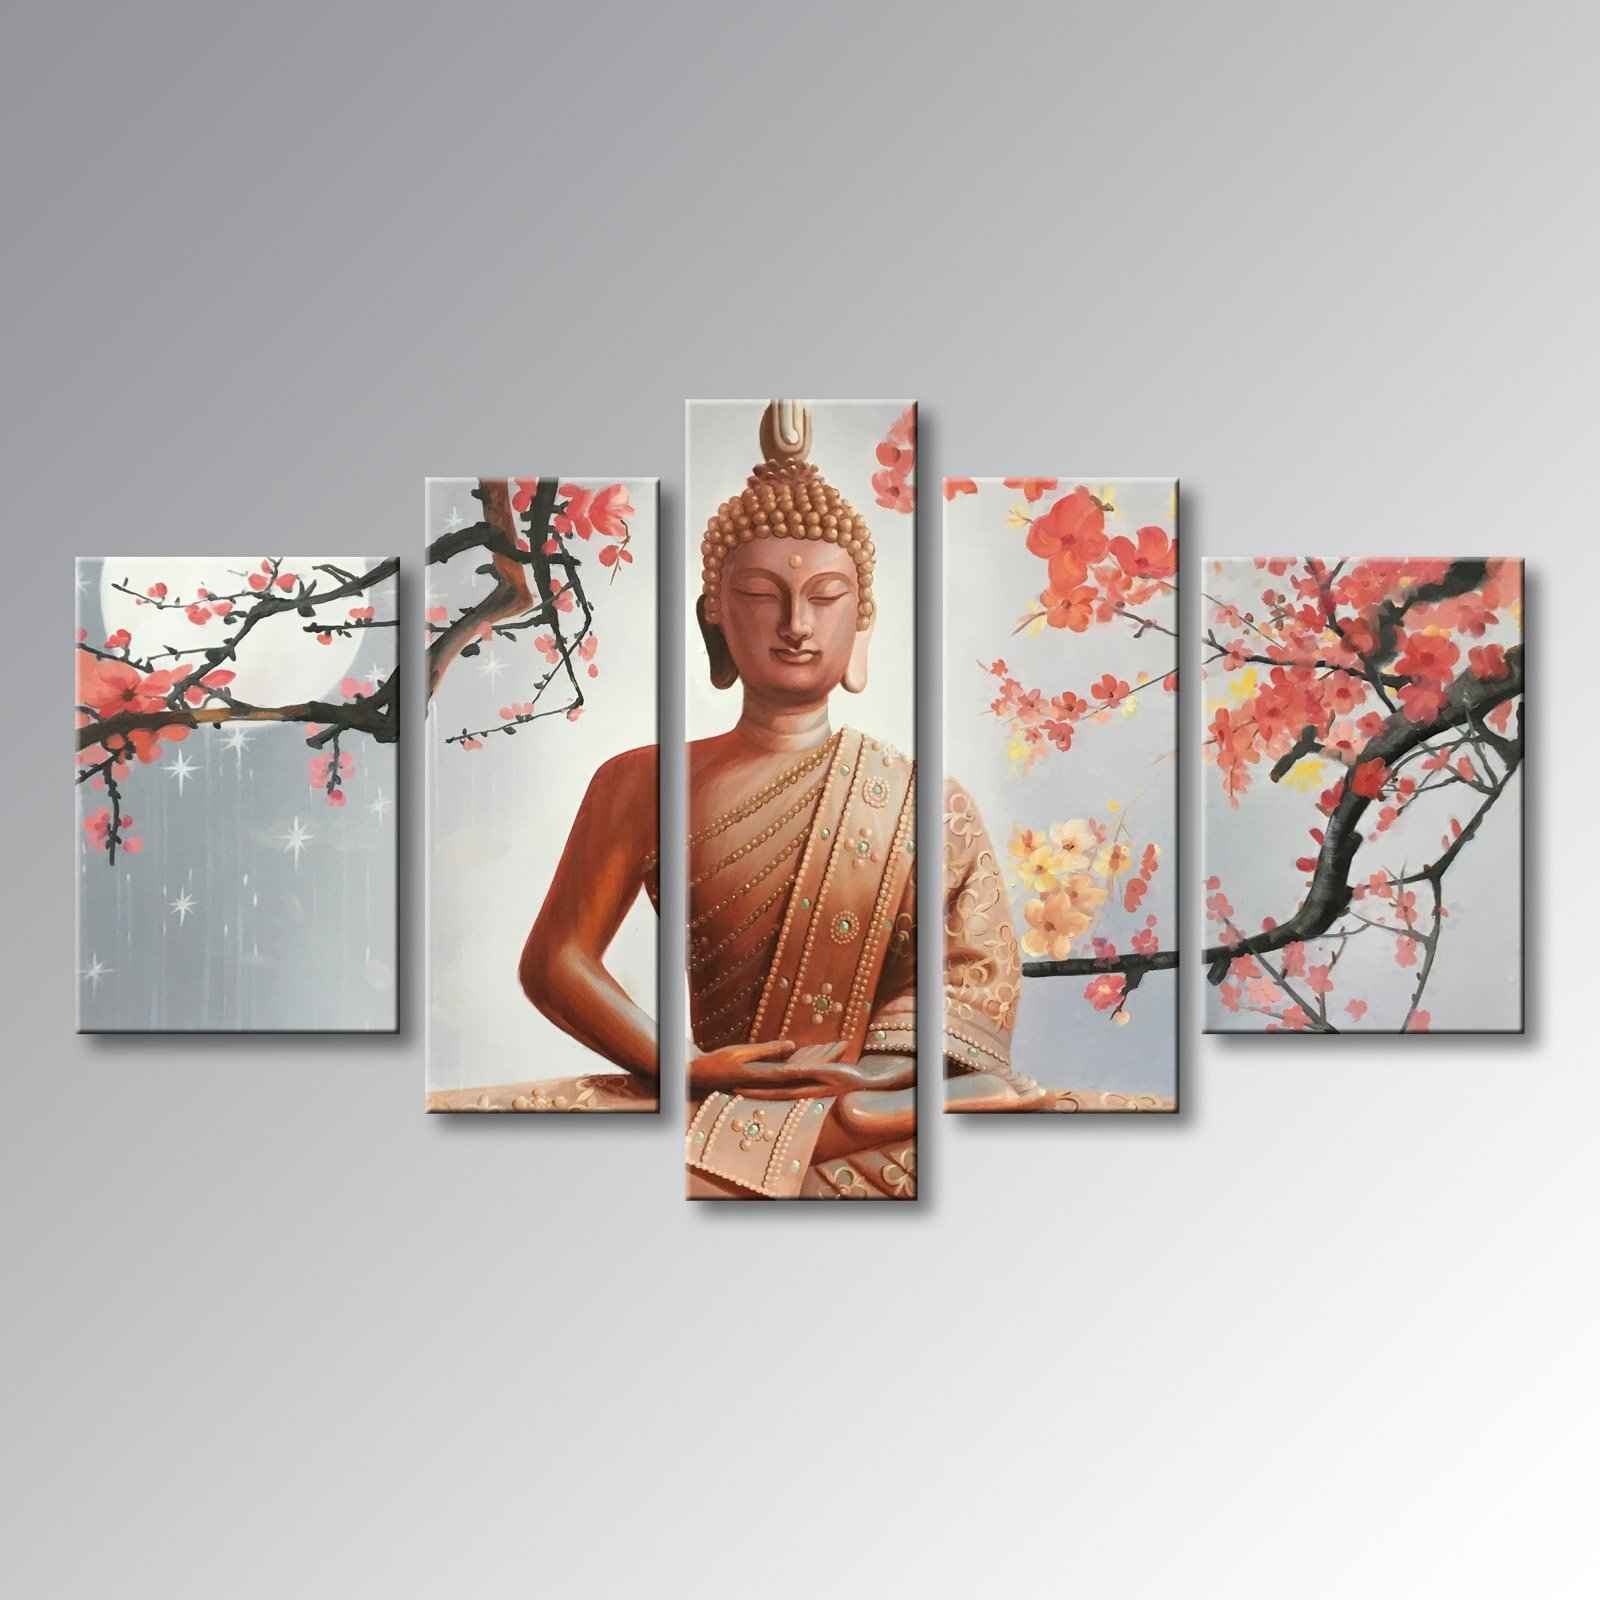 Winpeak Pure Handmade Framed Large Canvas Art Buddha Oil Paintings on Canvas 5 paenl Wall Decor For Living Room Stretched Ready to Hang (68''W x 40''H (16''x24'' x2, 12''x32'' x2, 12''x40'' x1))